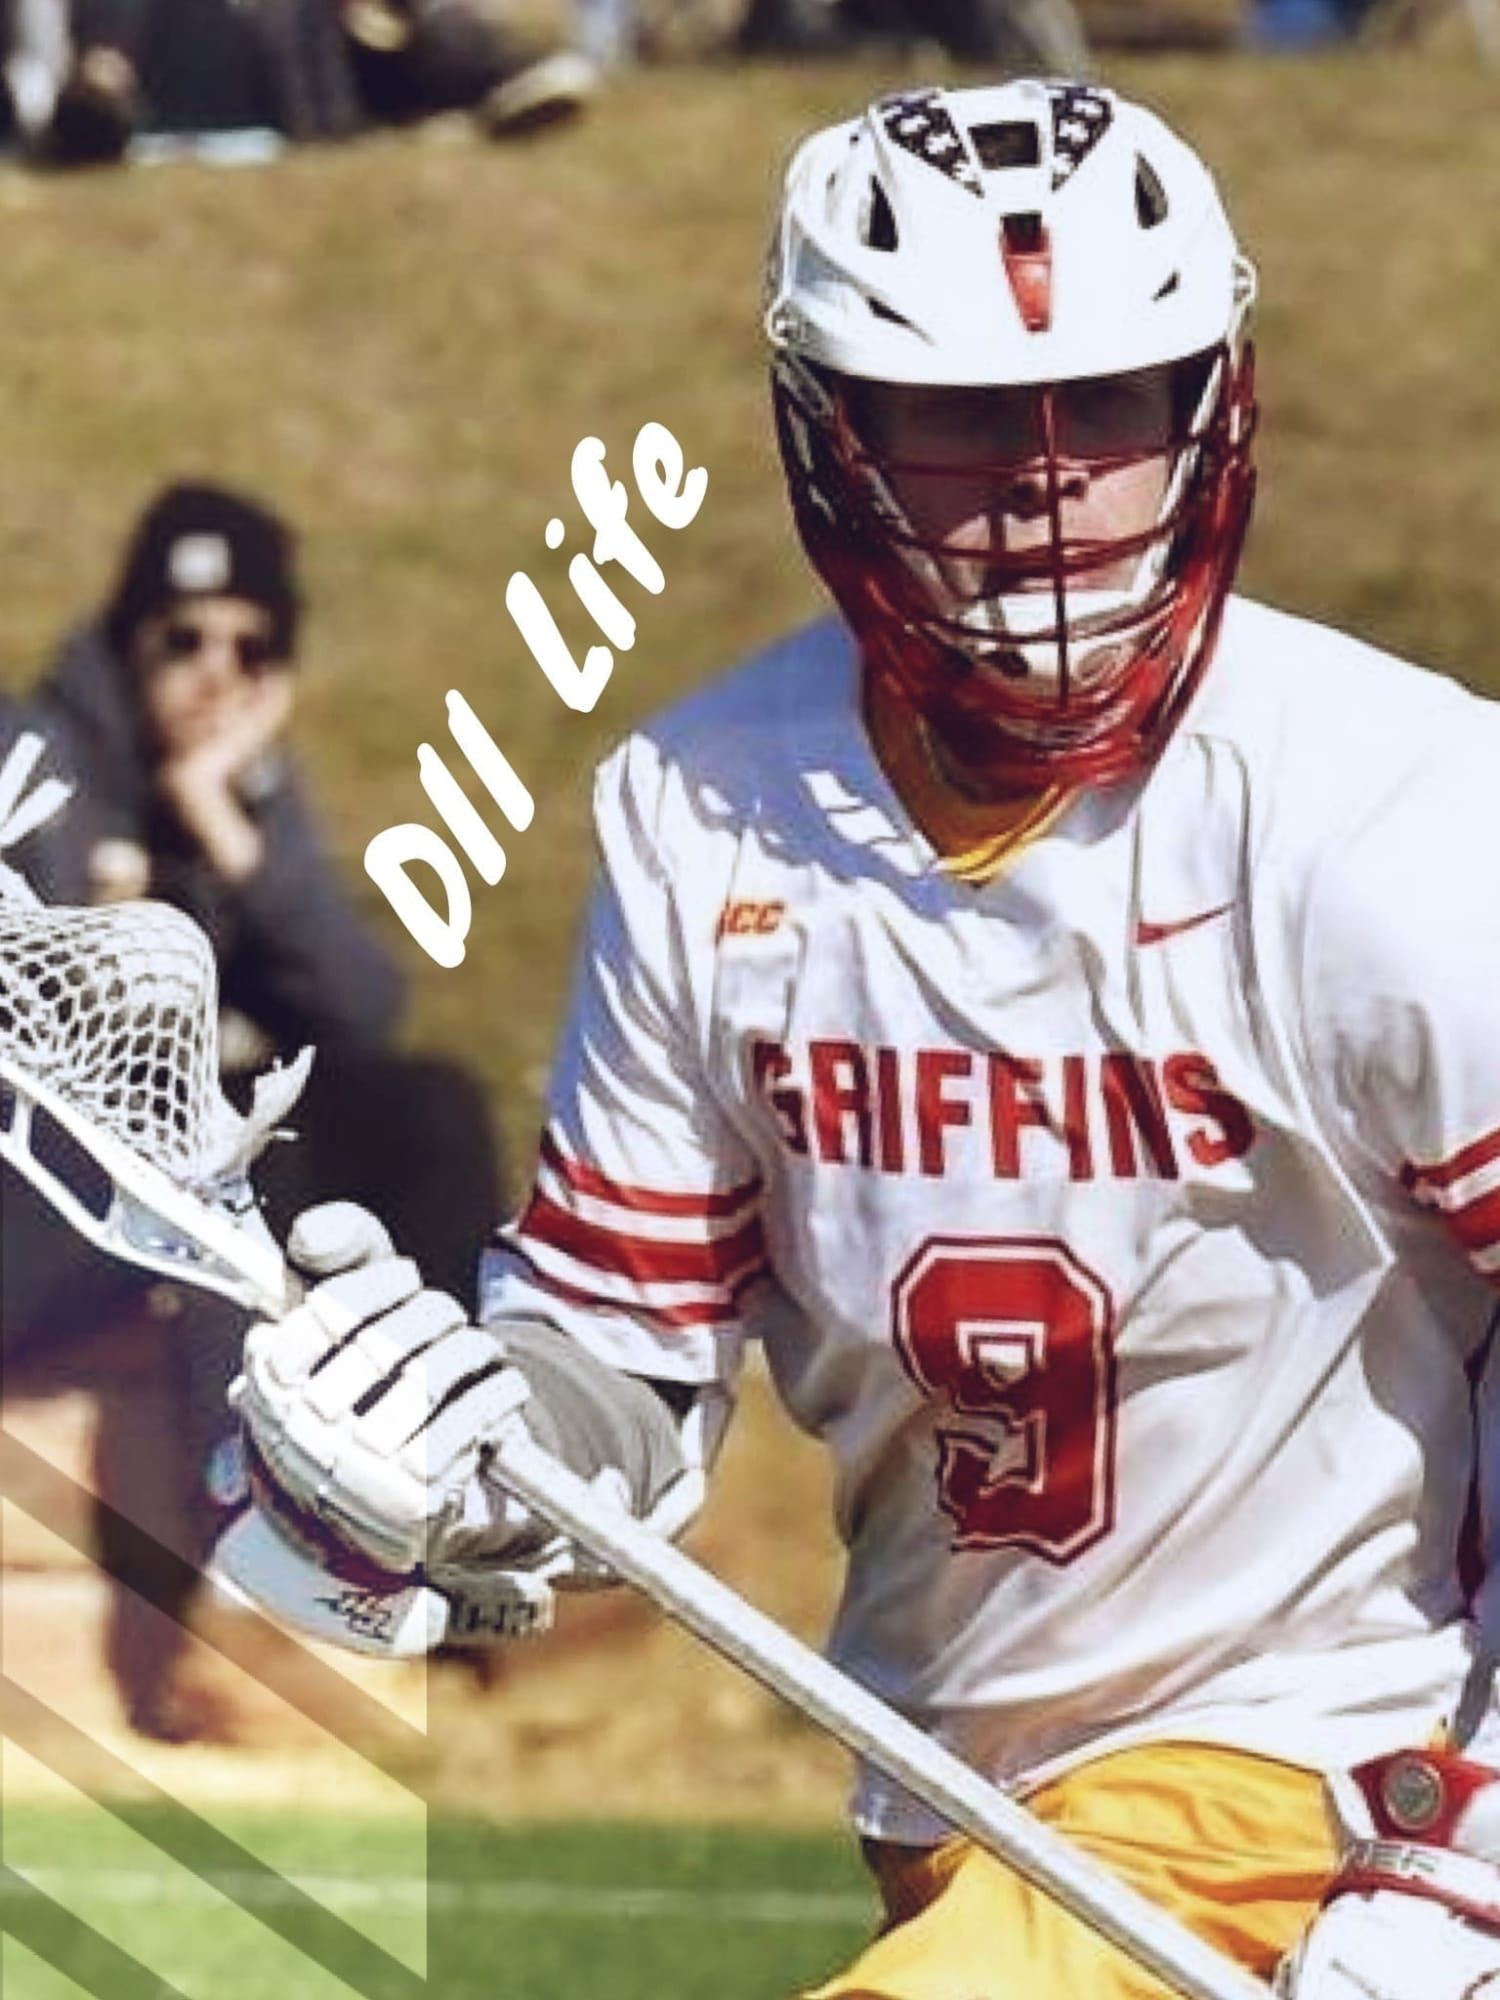 Marty Ward, the head men's lacrosse coach at Florida Southern College, has witnessed the growth of Division II lacrosse as a player and coach.